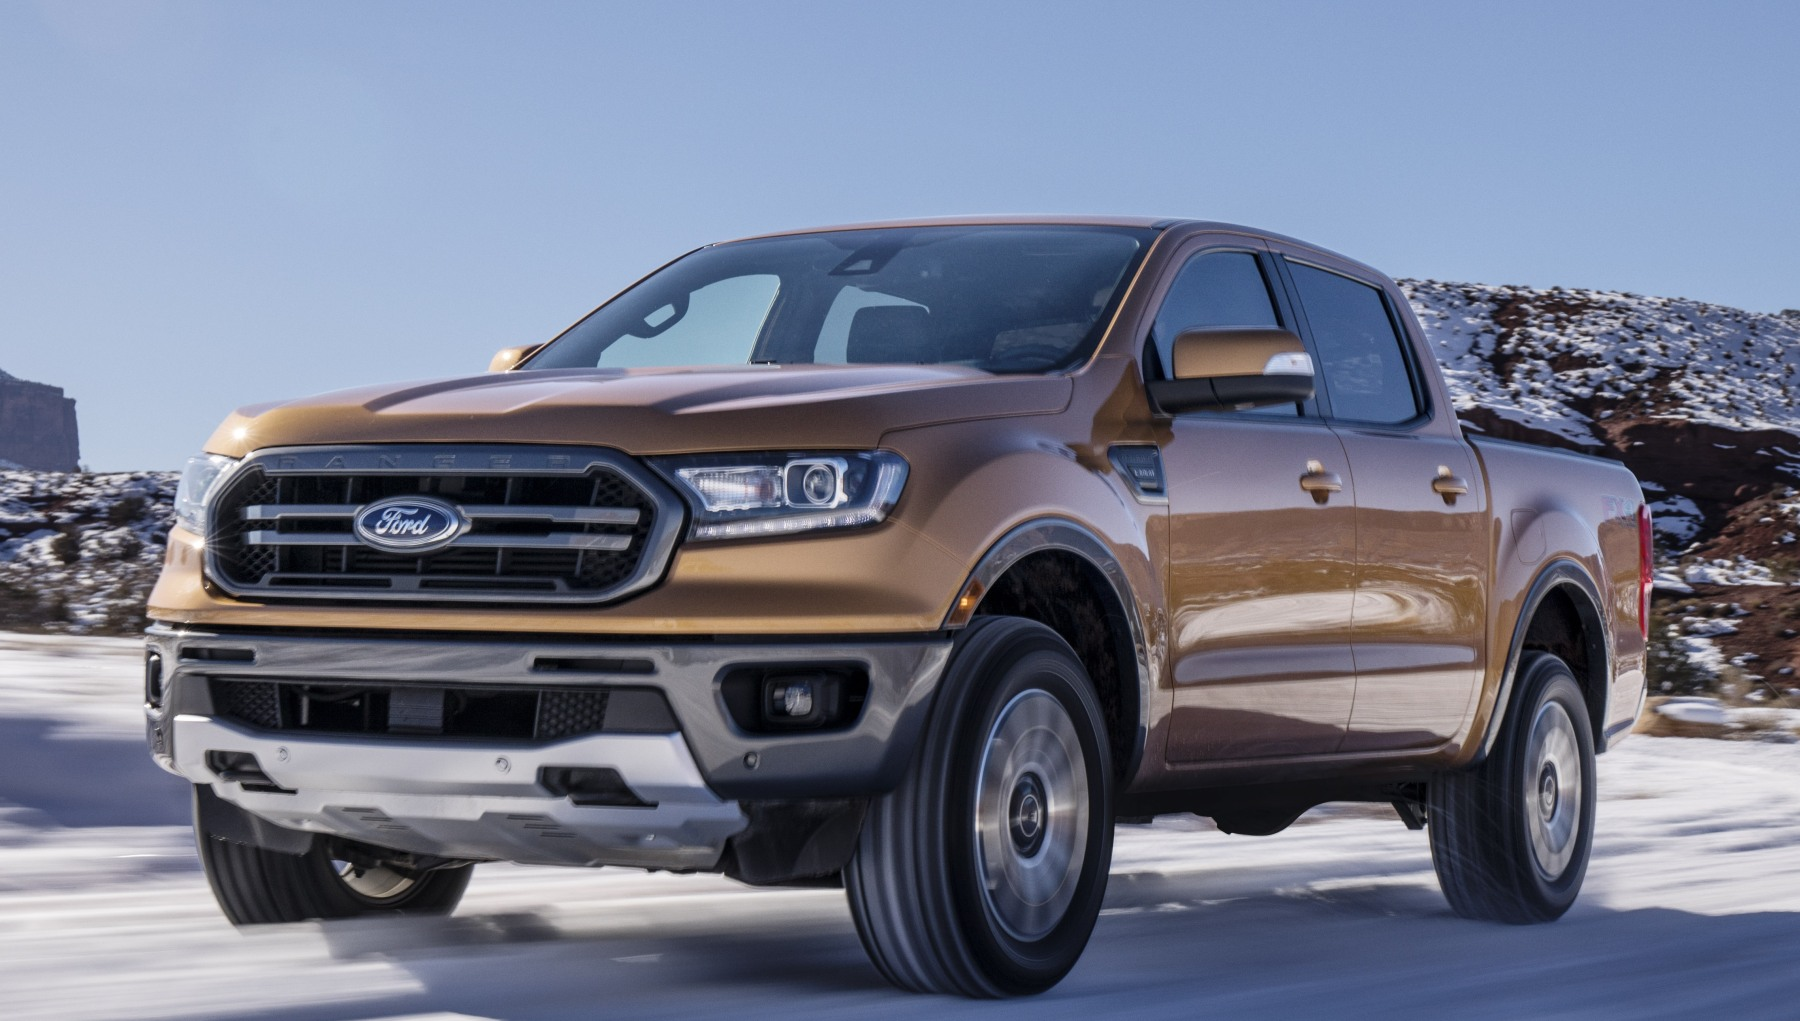 photo image Ford's 2019 Ranger unveiled with automatic emergency brakes